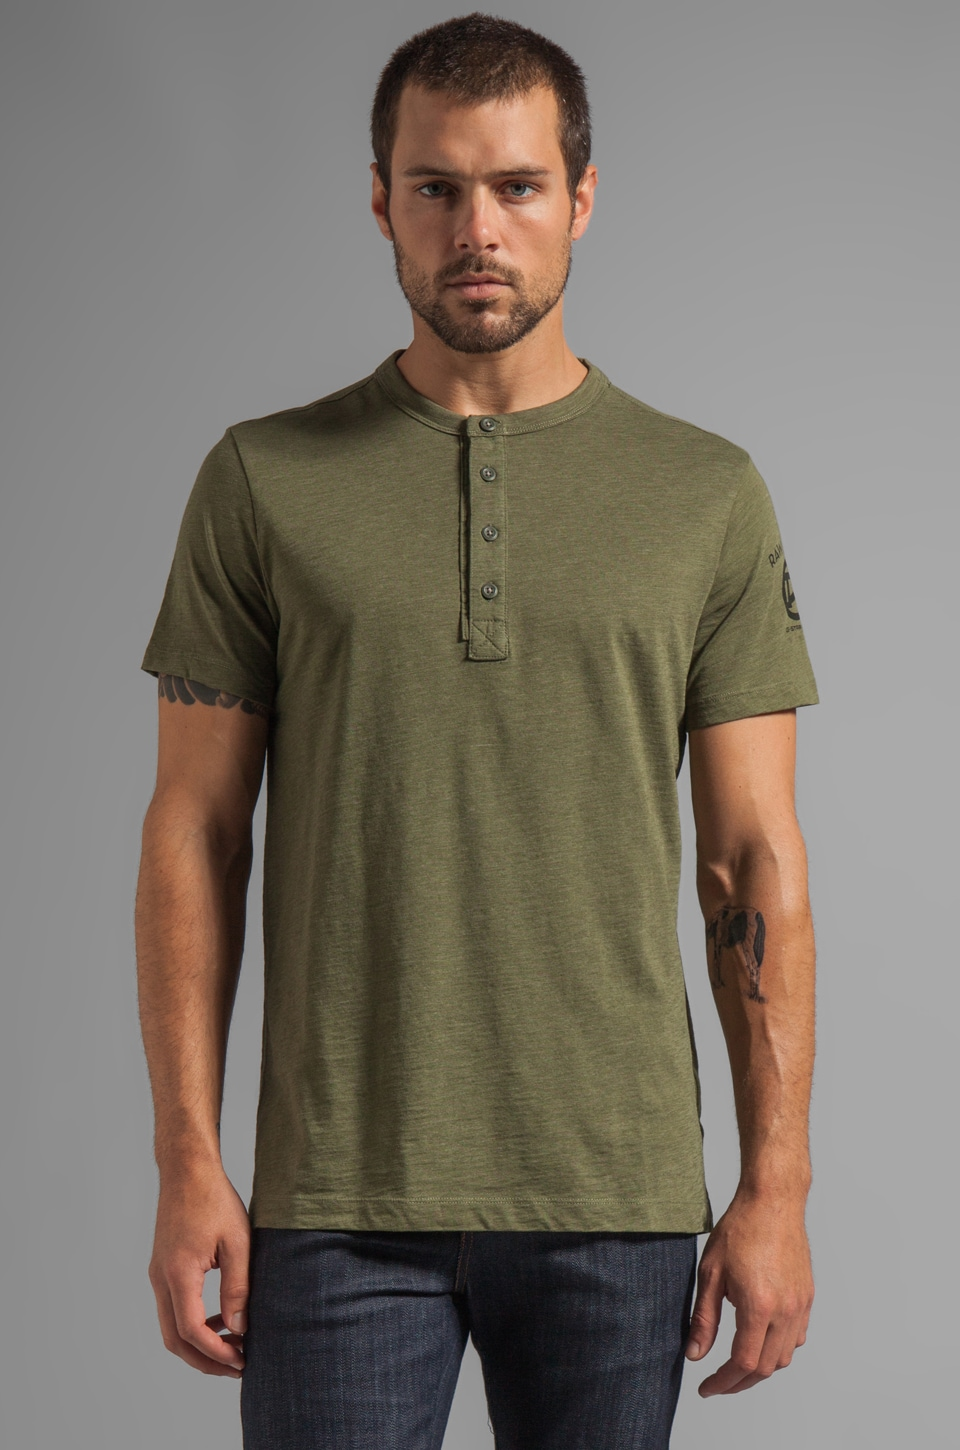 G-Star Miller Granddad Short Sleeve Tee in Sage